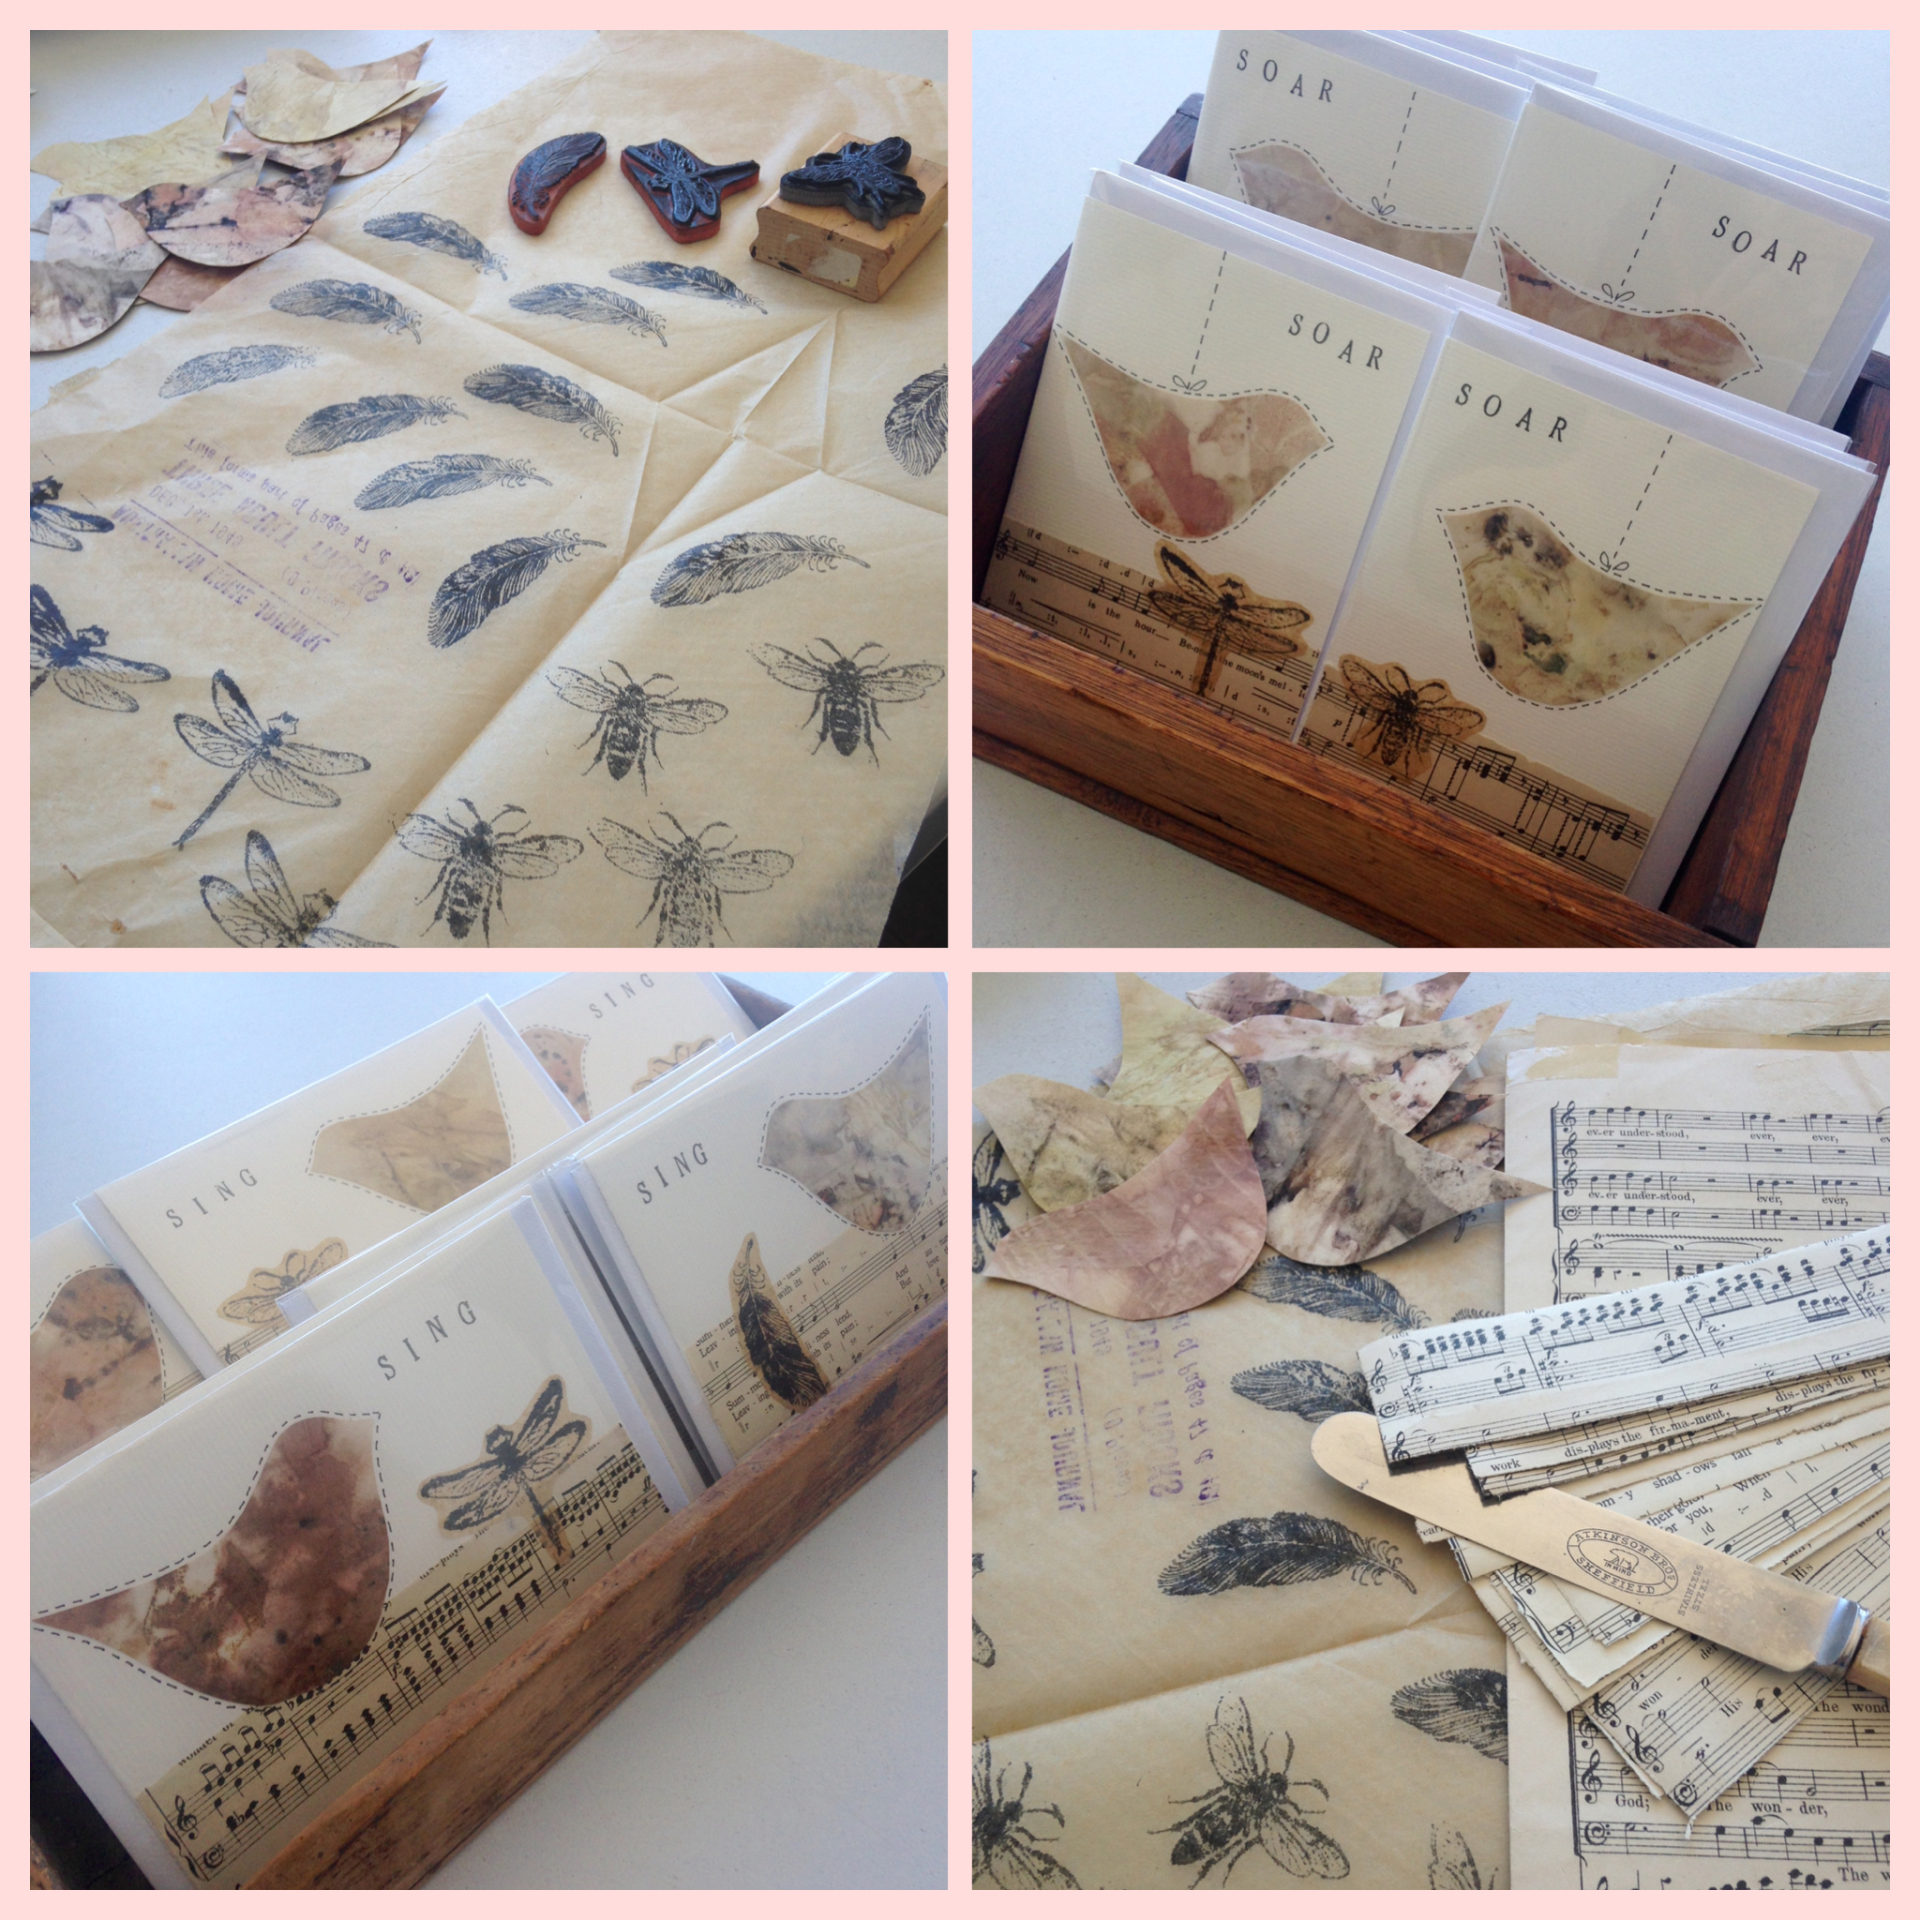 Sing and soar greeting cards preparation - Rita Summers